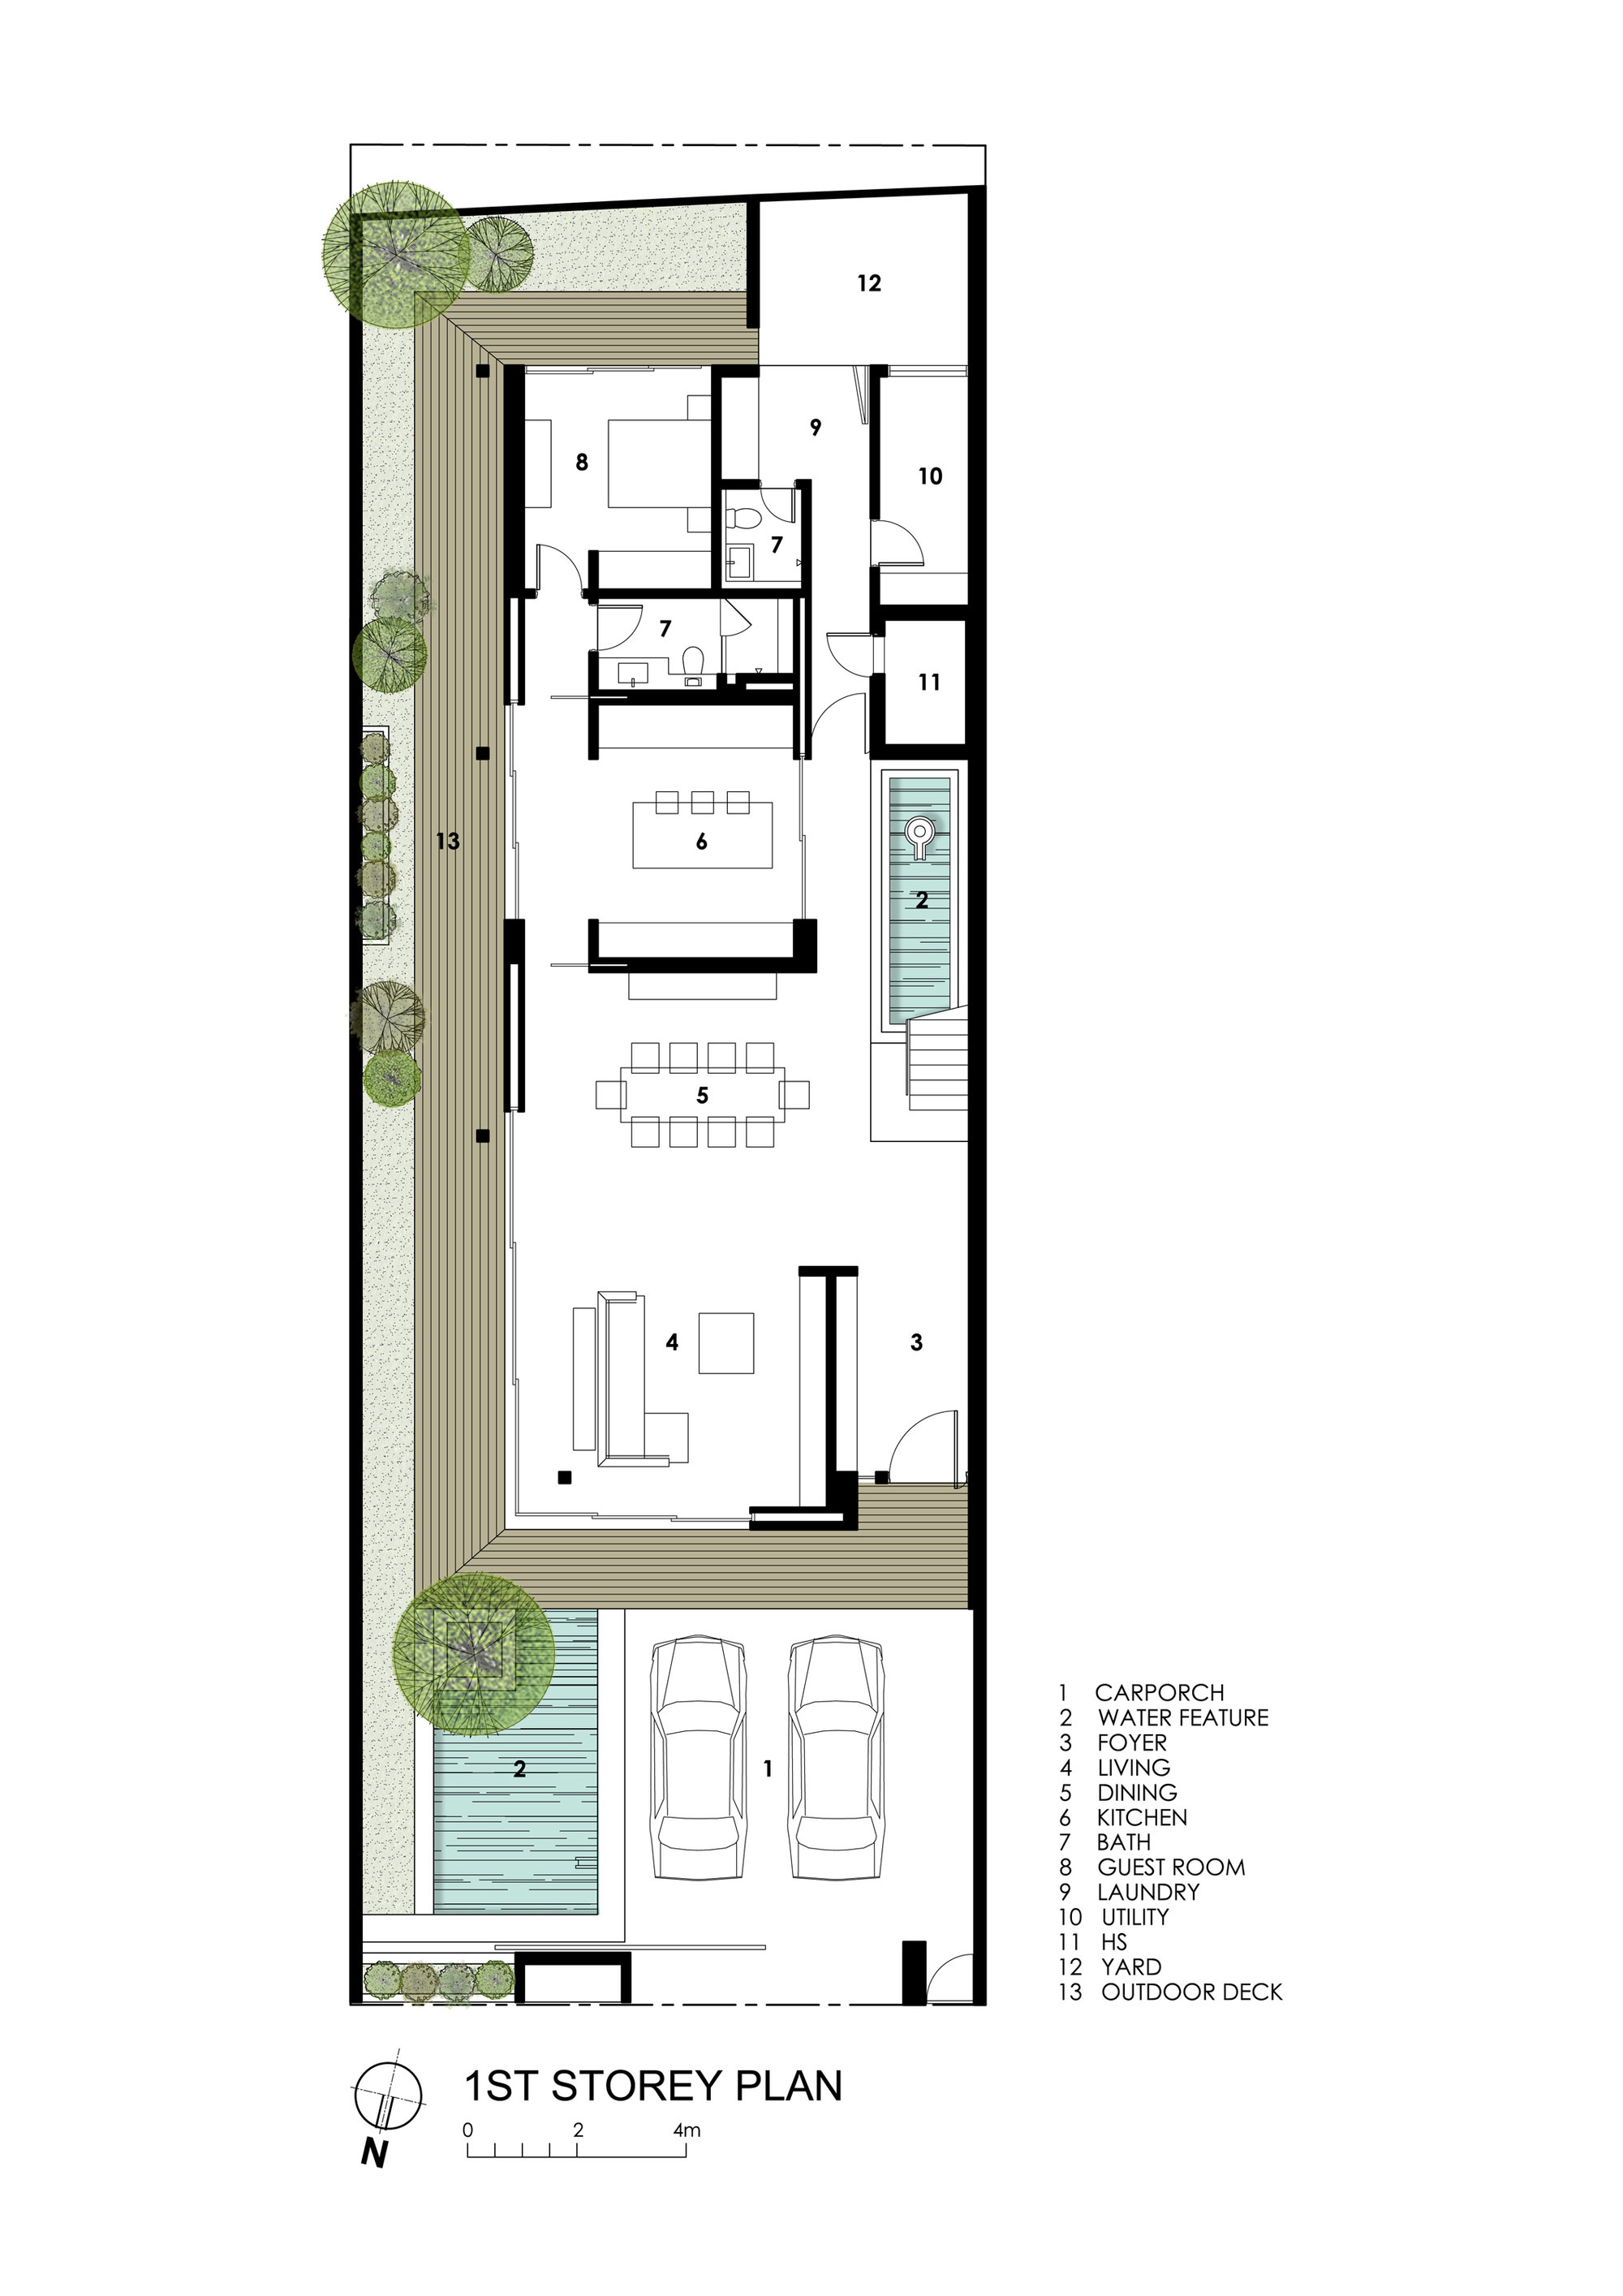 House Plans with Photo Gallery Inspirational Gallery Of Far Sight House Wallflower Architecture